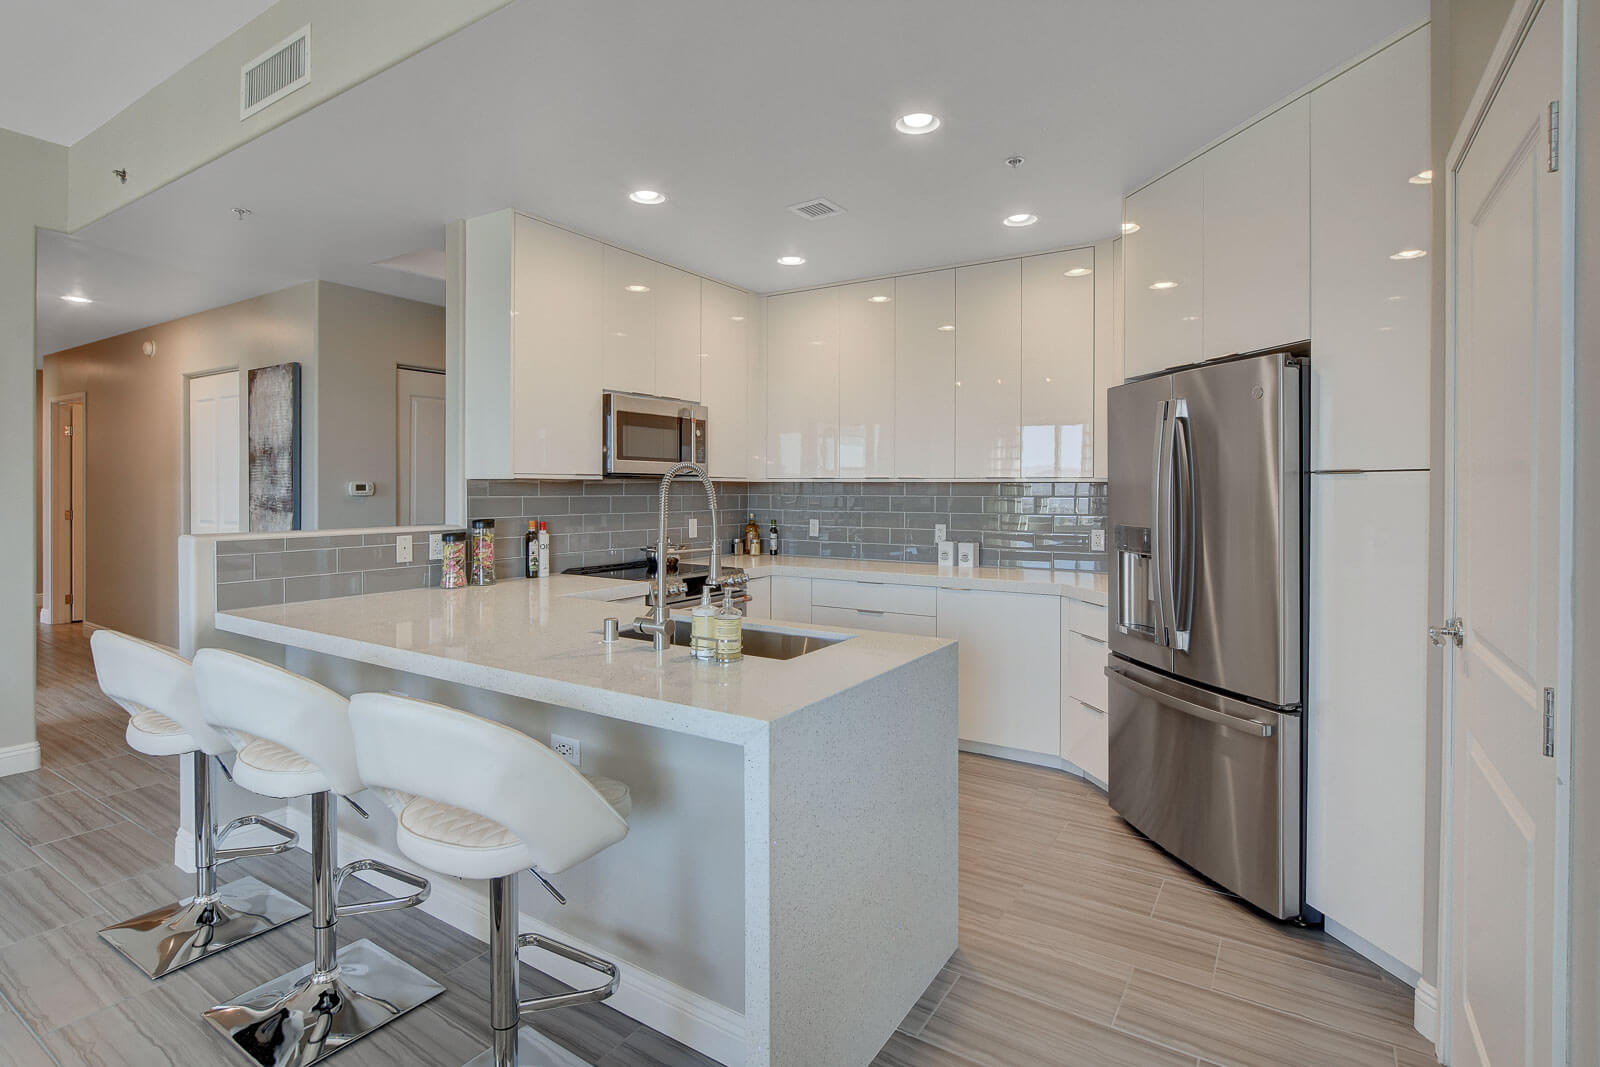 white kitchen with new stainless steel appliances